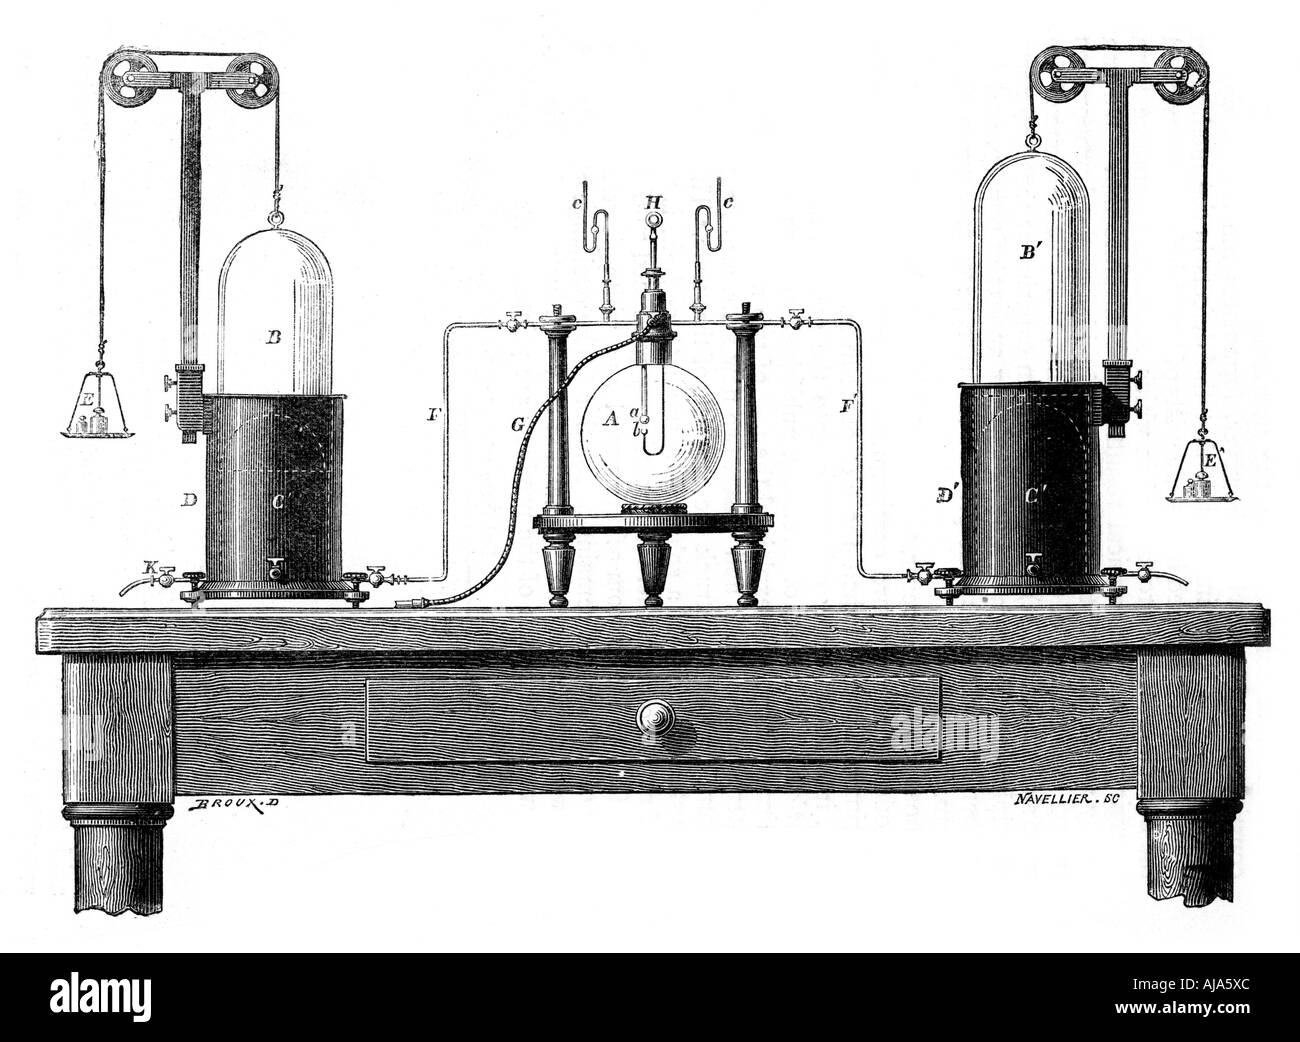 Antoine Lavoisier s apparatus for synthesizing water from ...